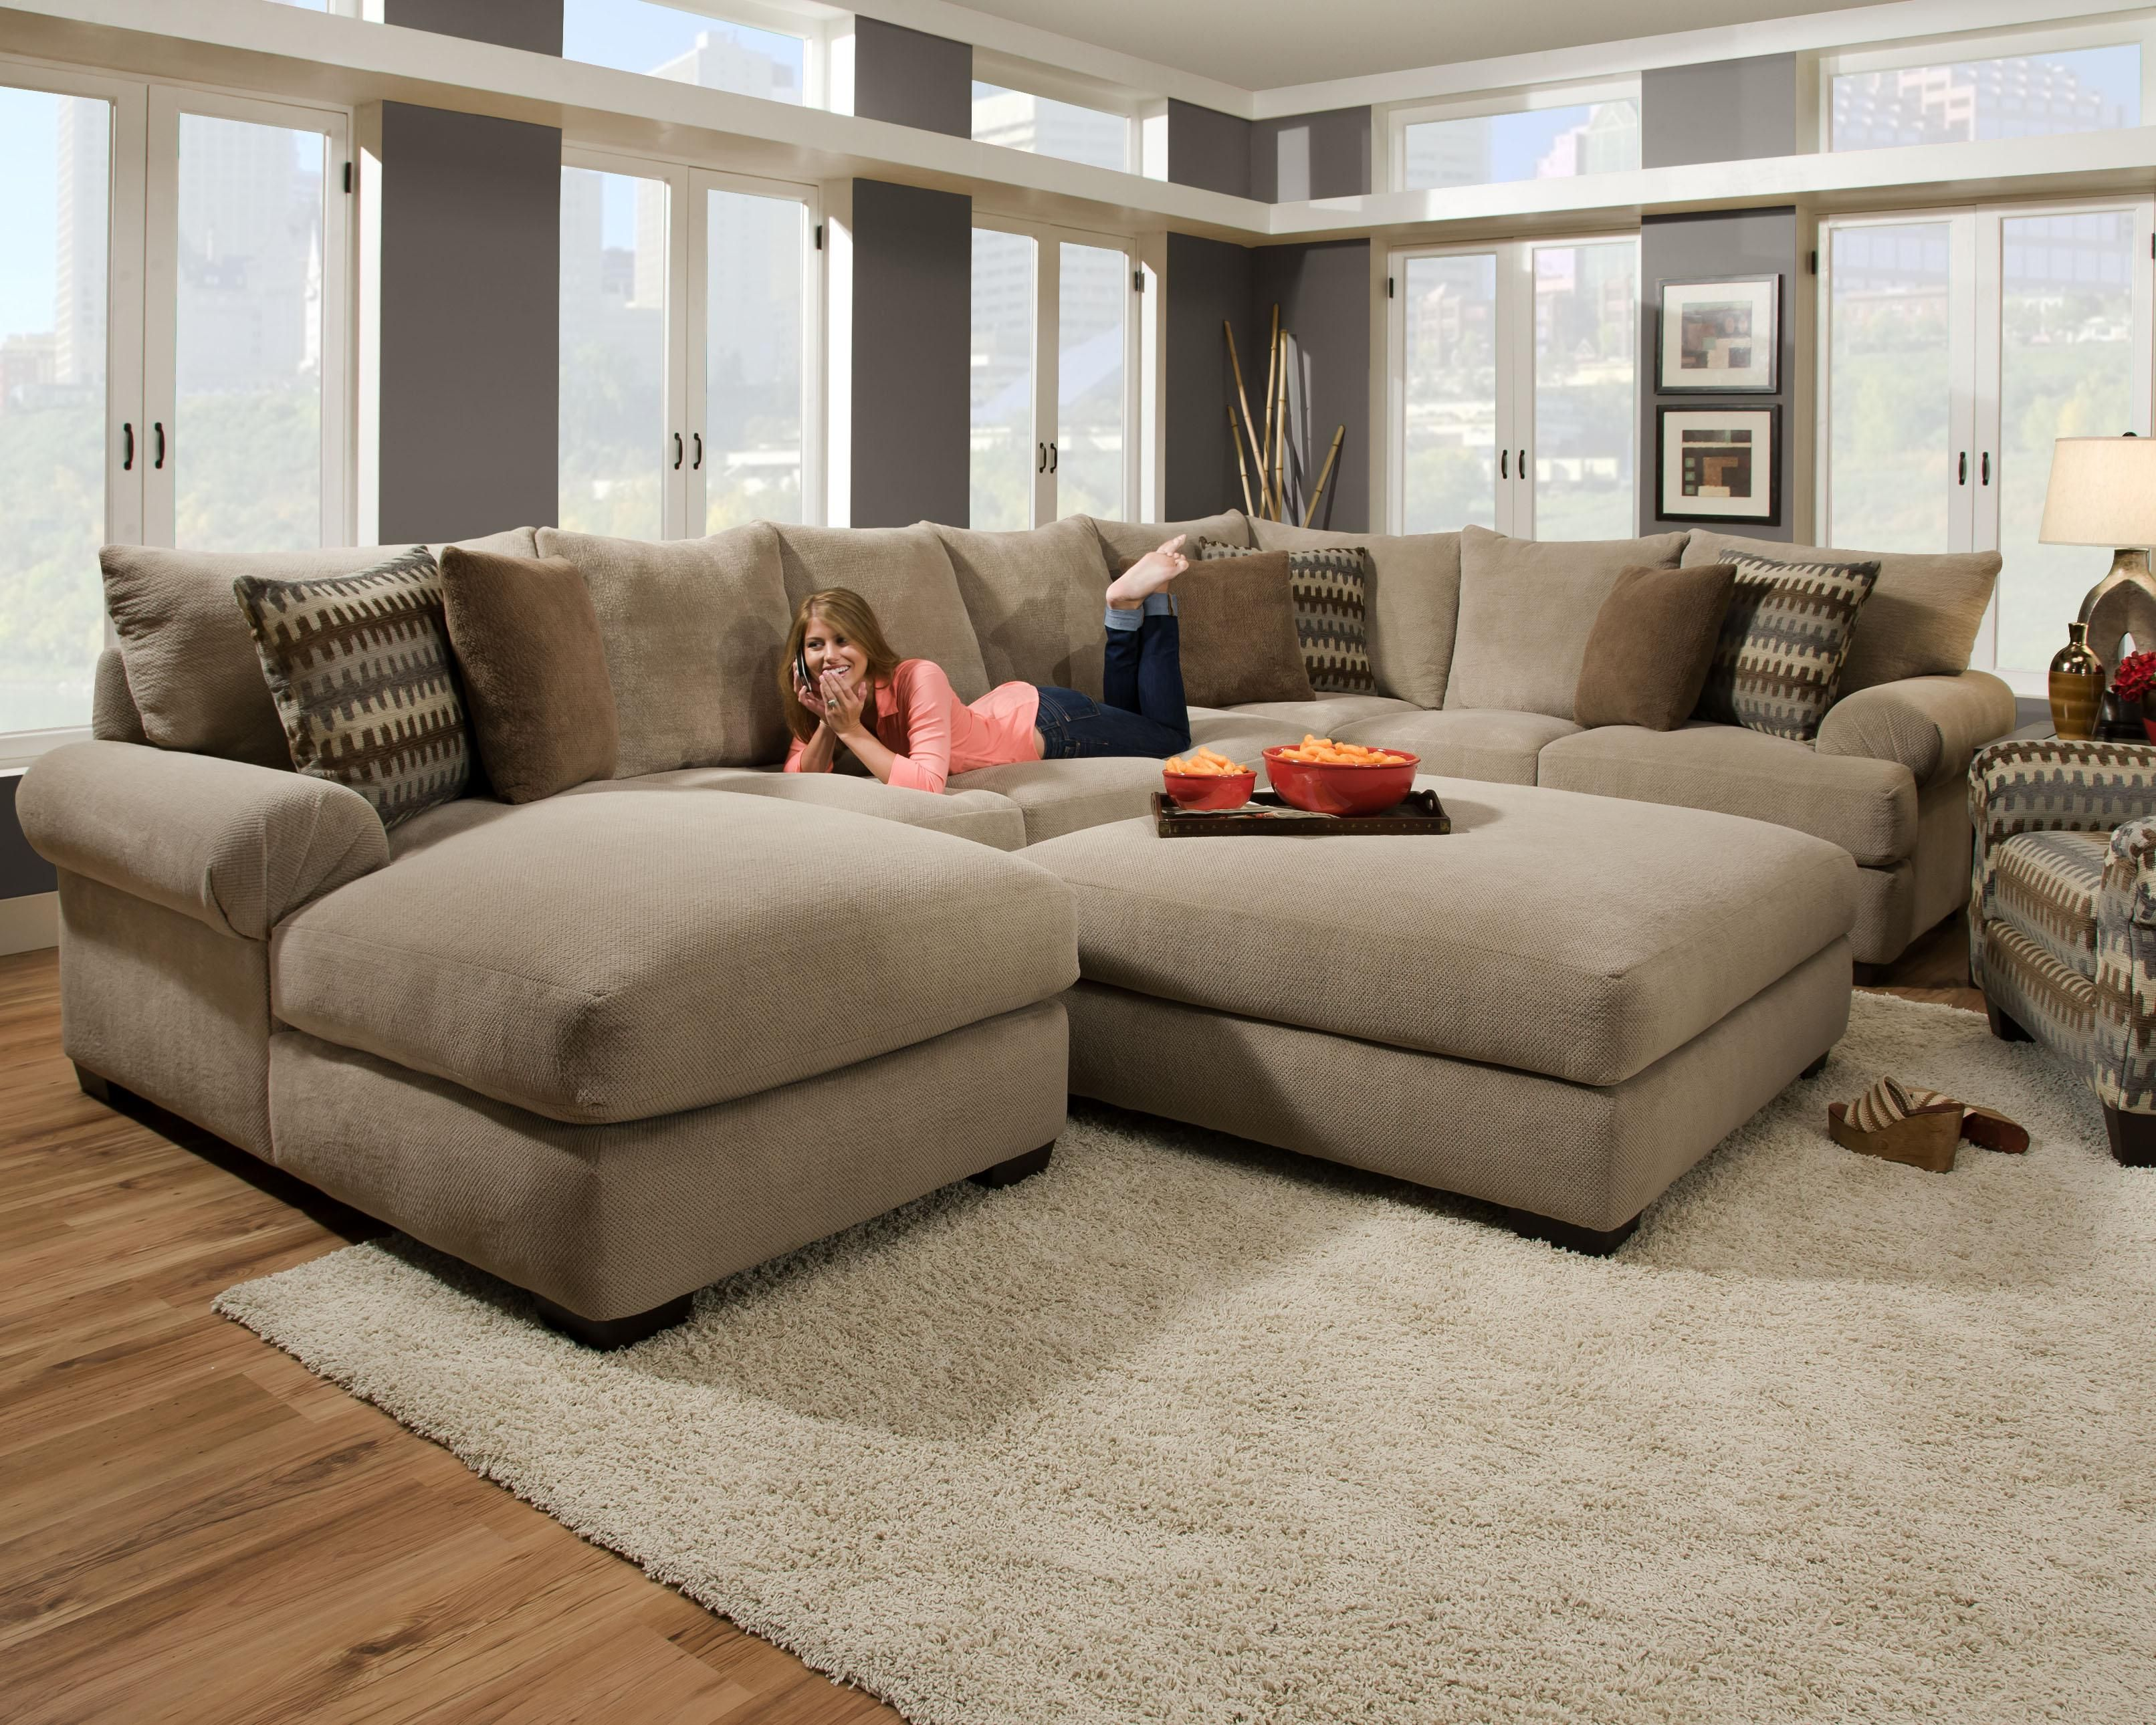 Contemporary Large Sectional Sofas for Living Room